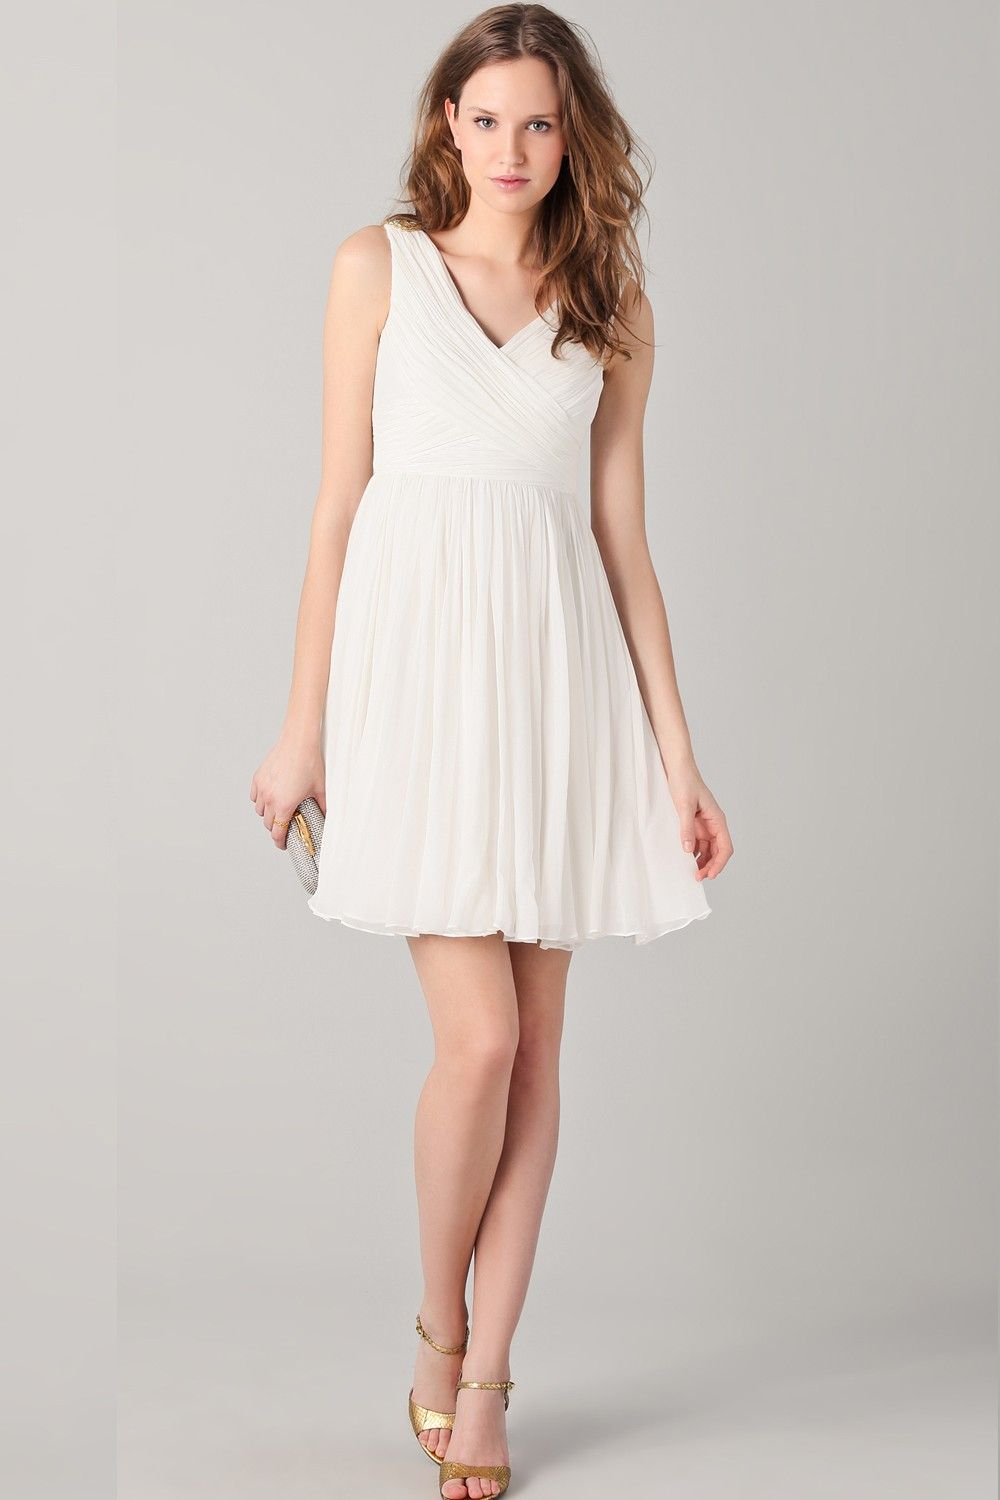 aaef3771362861 V Neck White Short Chiffon Dress With Beaded Shoulders | My Fashion ...